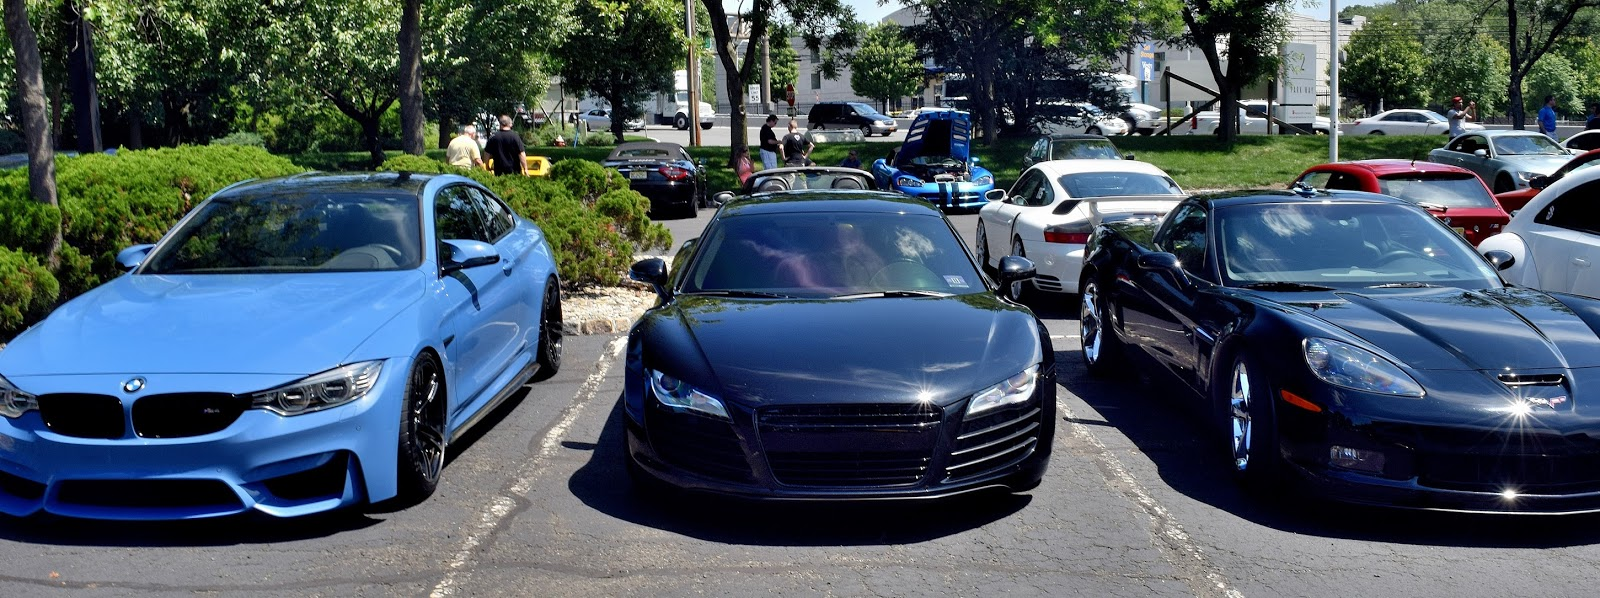 Maserati Of Bergen County >> Cars and Caffe: Cars and Caffe at Maserati of Bergen County -- Sunday, June 14th, 2015